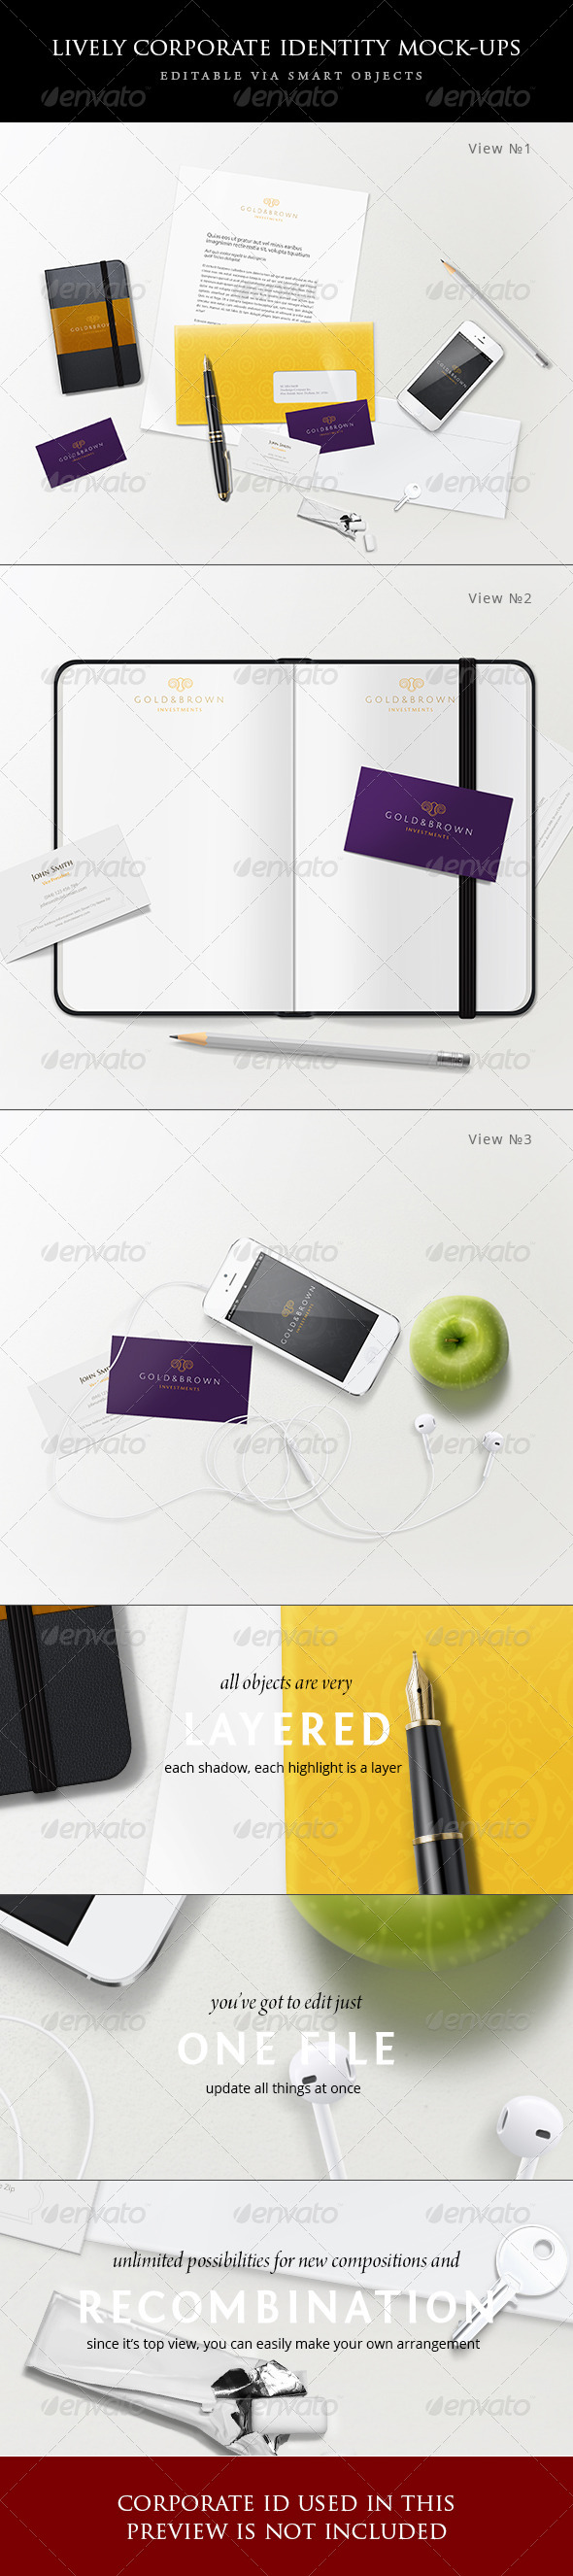 Lively corporate stationery/branding mock-ups  - Stationery Print